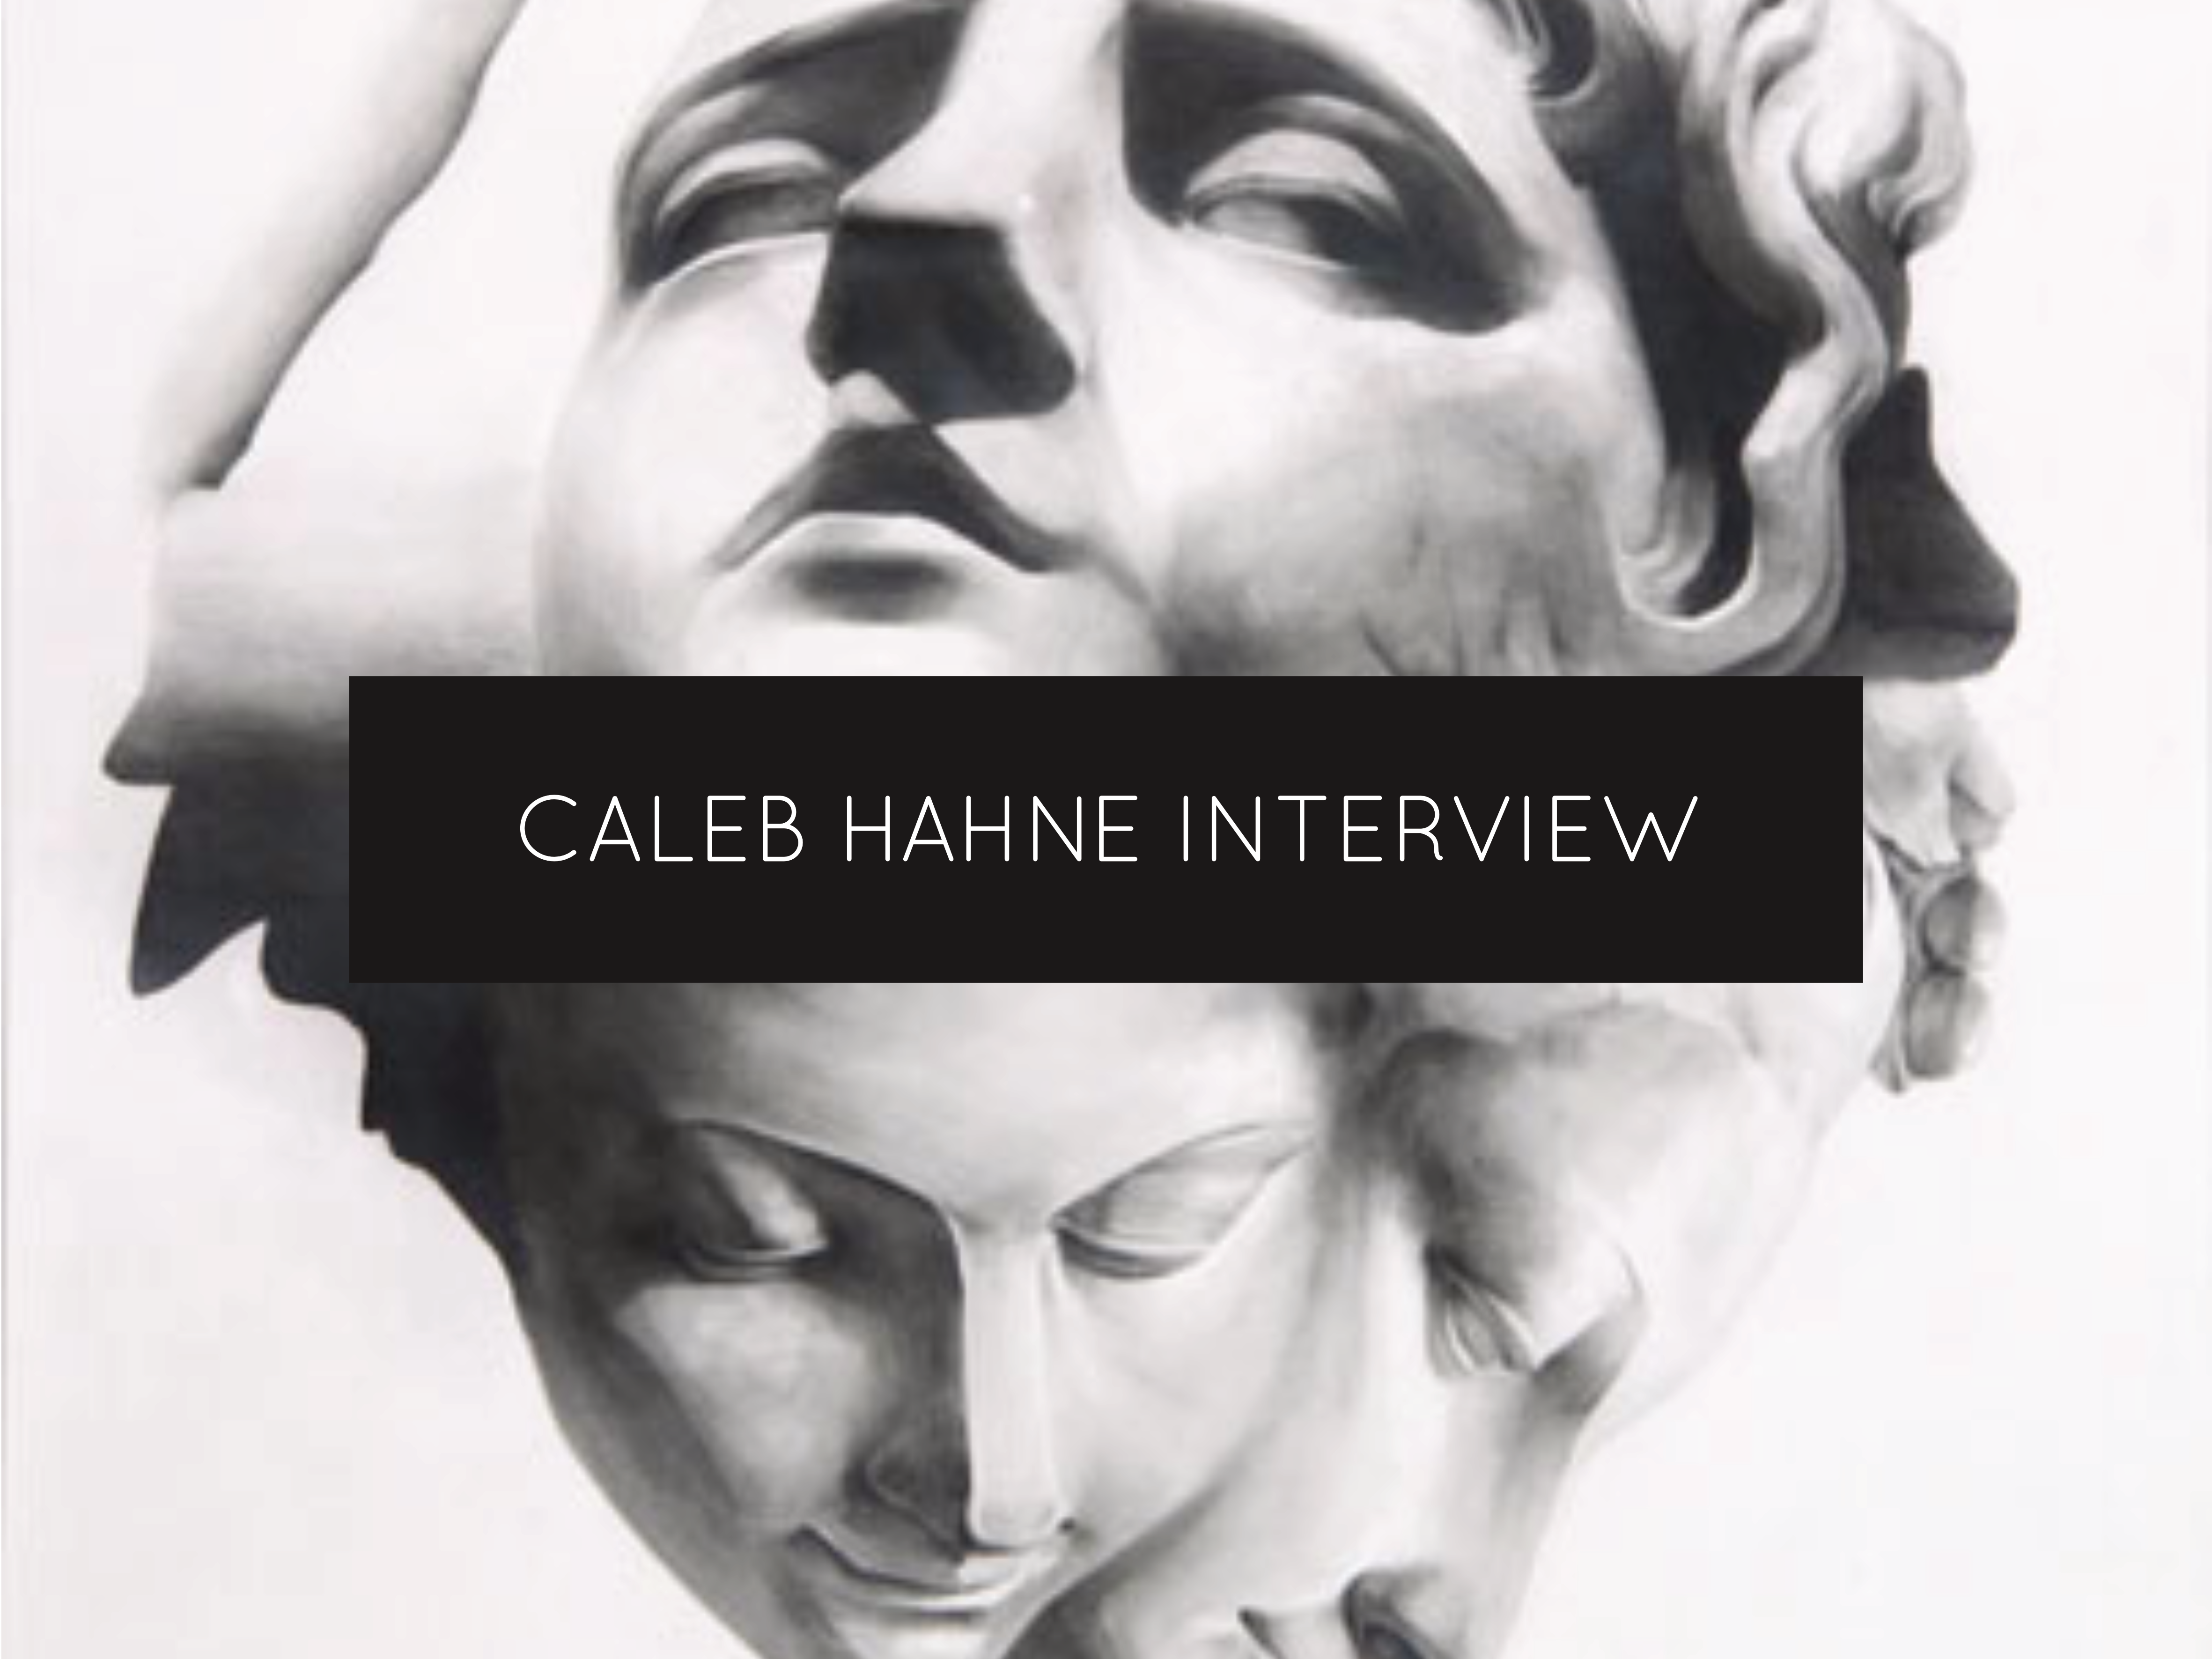 caleb hahne interview